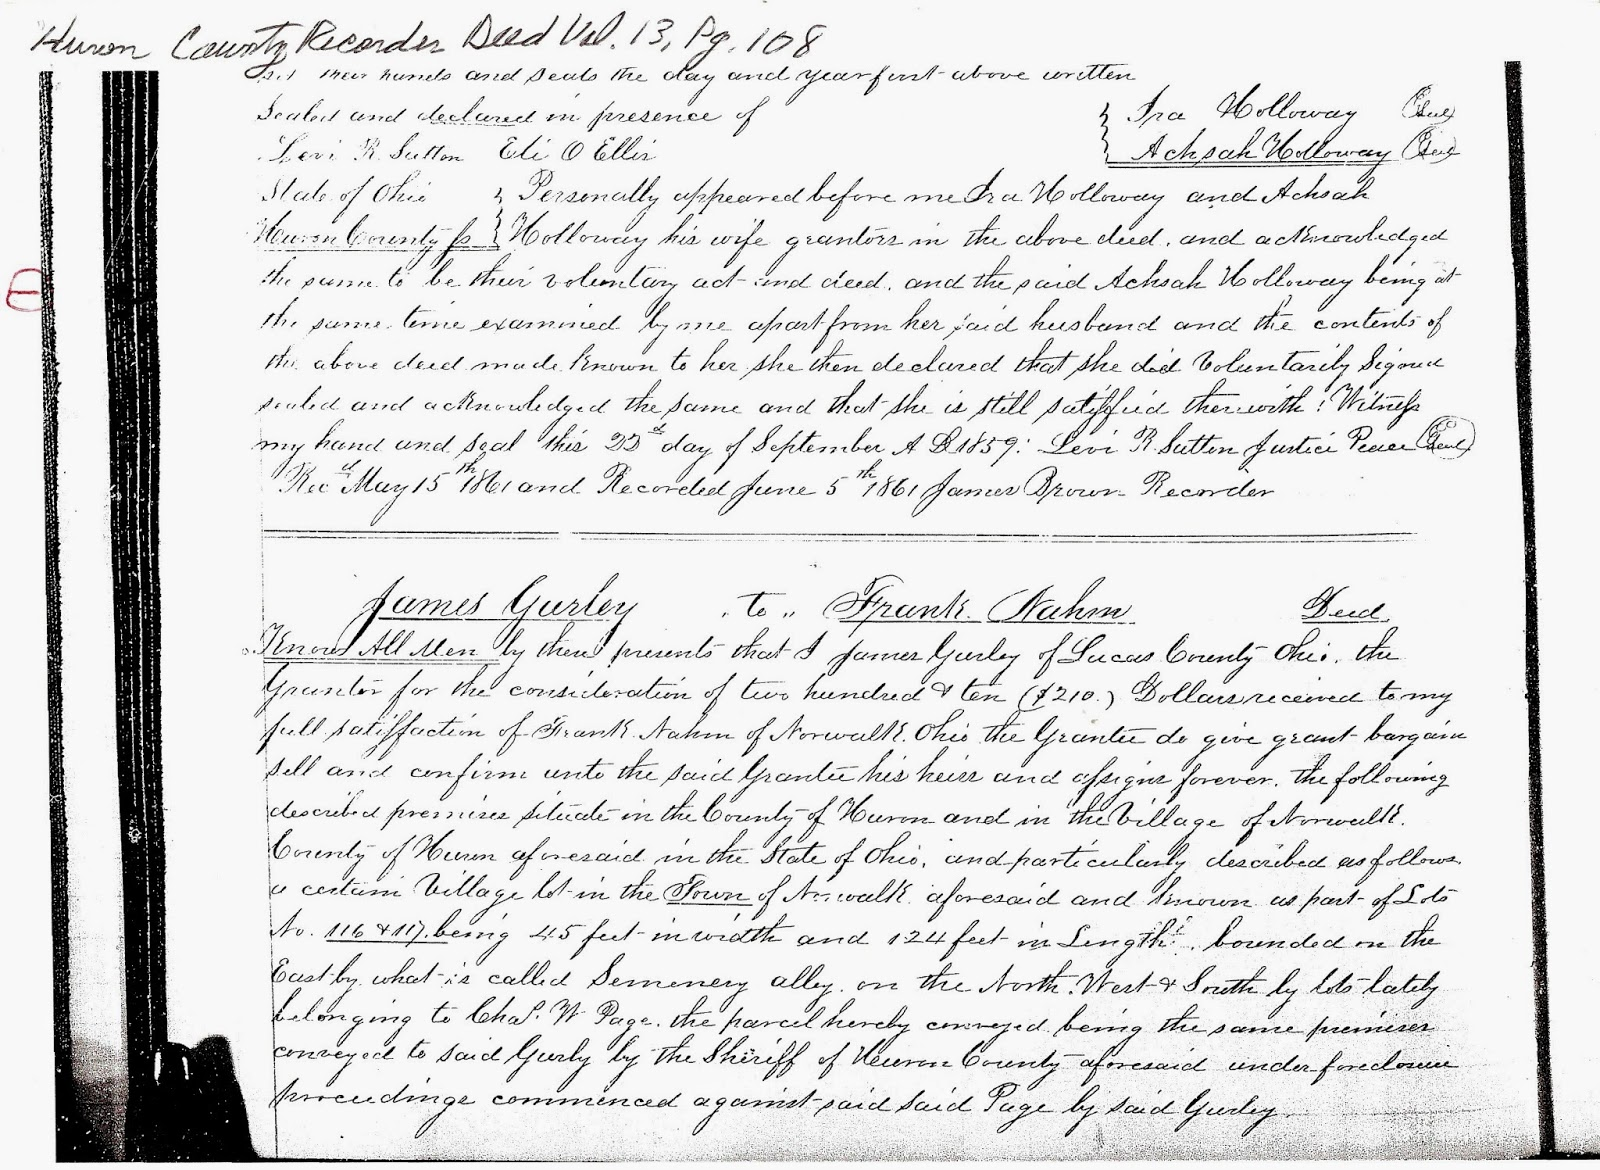 Family history research of a sahm volume 13 page 108 109 file james gurley to frank nahm for james gurley of lucas county ohio 5 june 1861 huron county recorder deeds norwalk aiddatafo Image collections